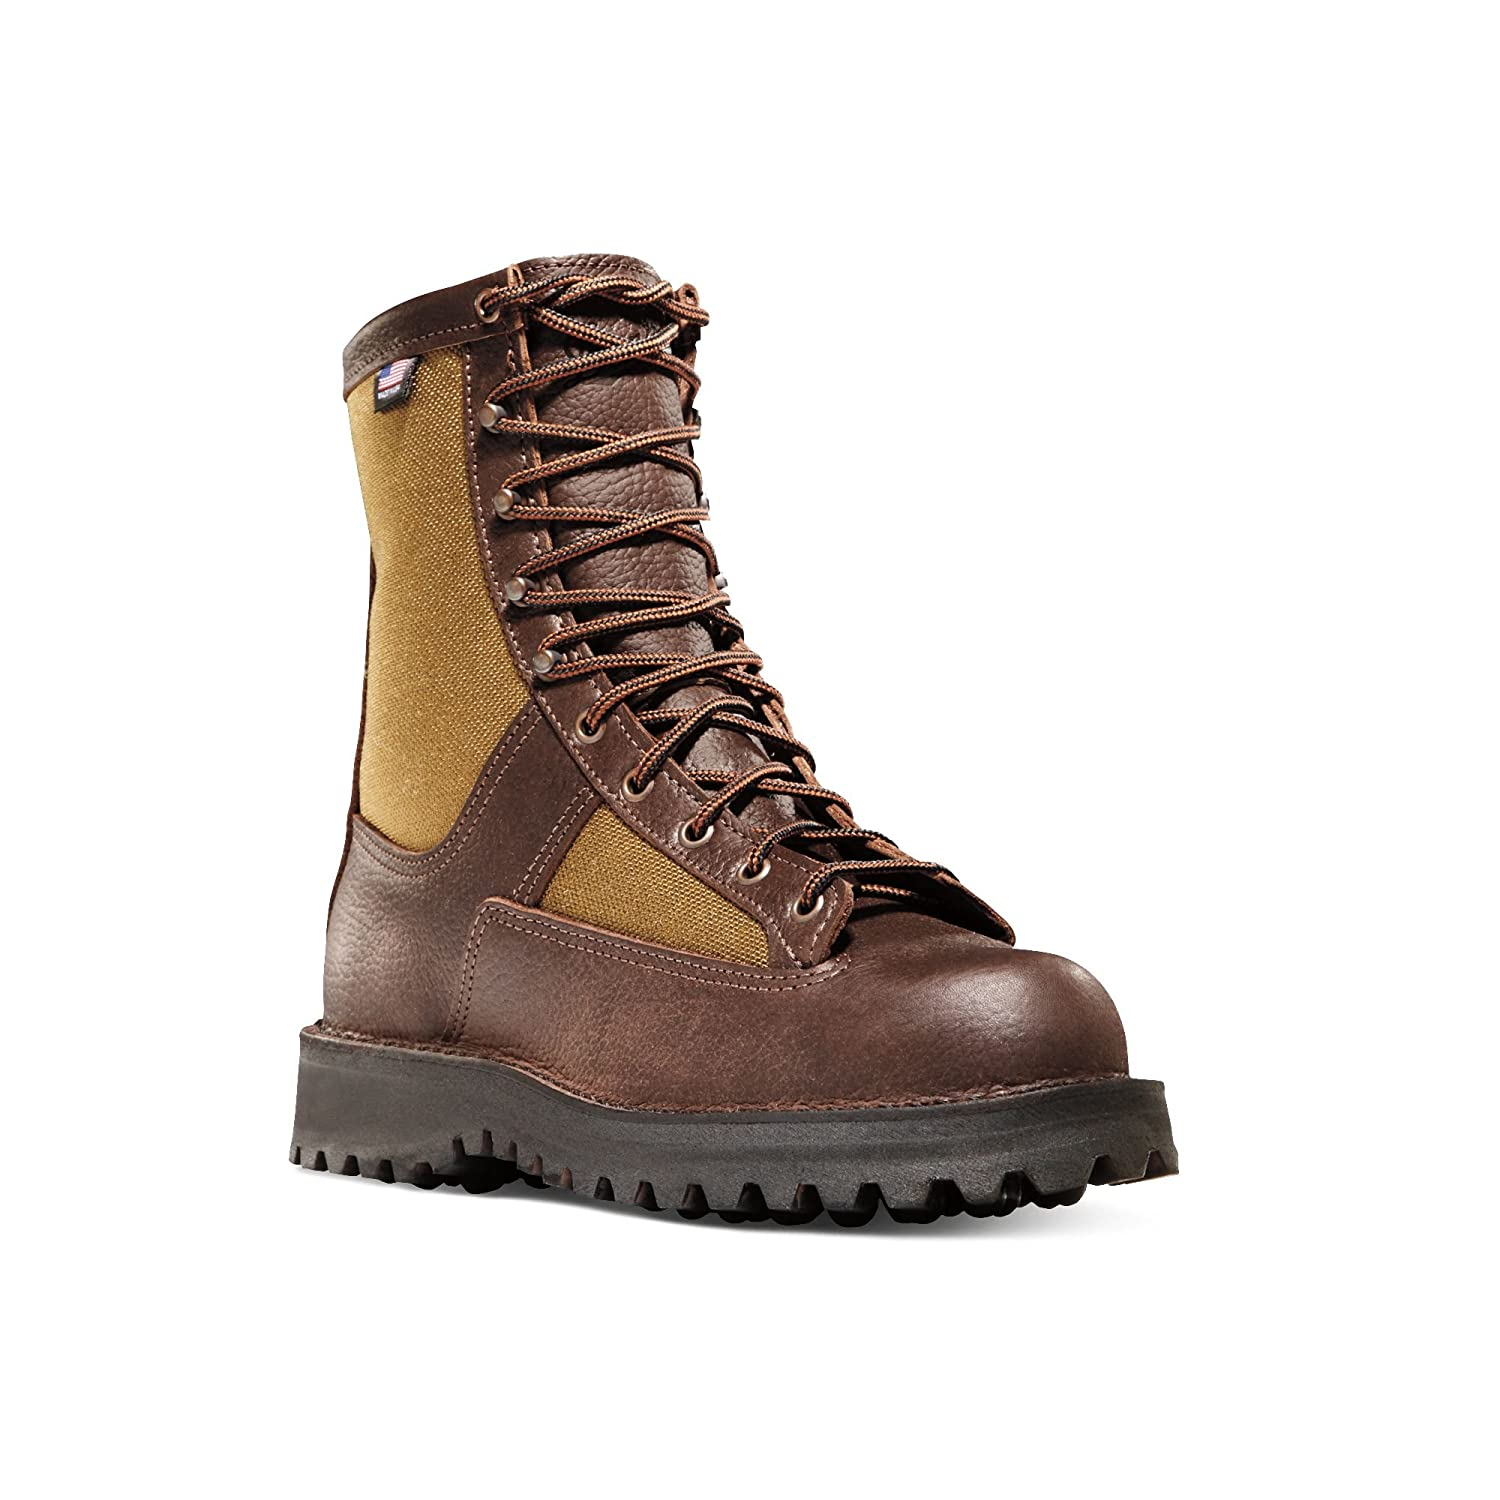 c4a87232ea9 Amazon.com: Danner Grouse Boot 8